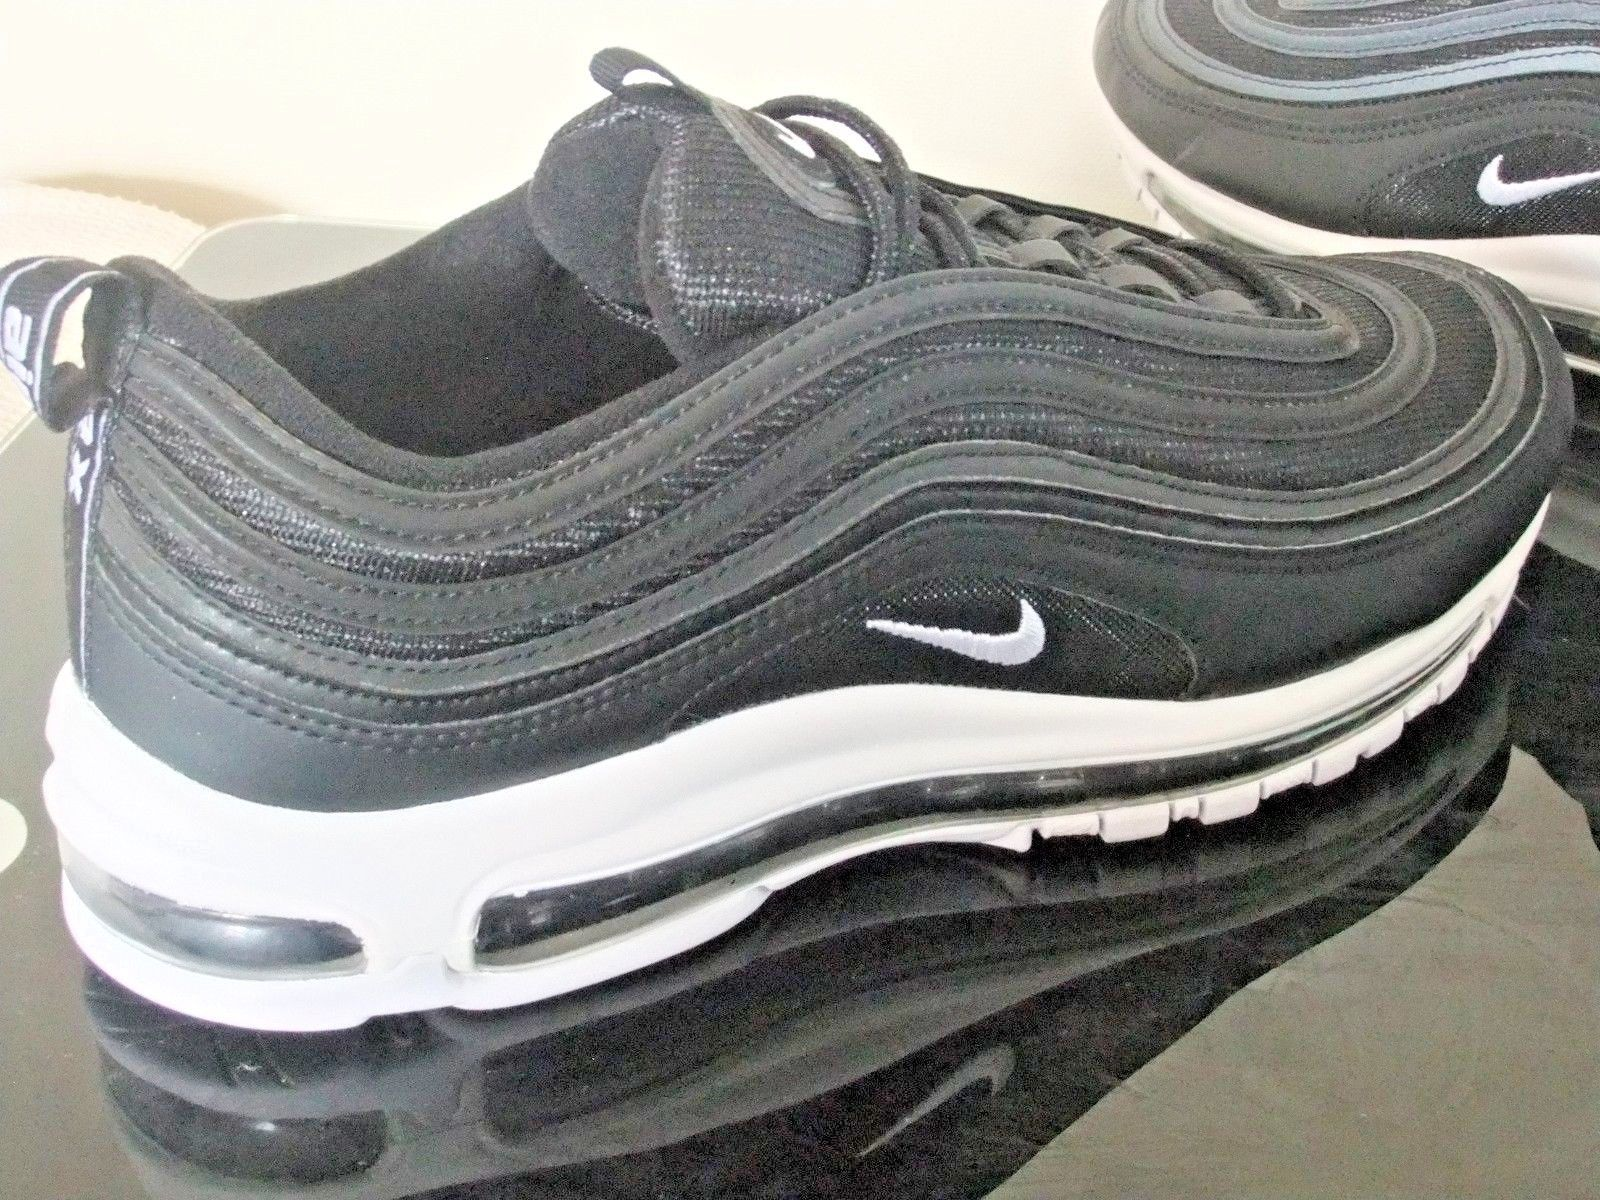 NIKE AIR MAX 97 MEN'S SHOES TRAINERS SIZE 10.5 921826 001